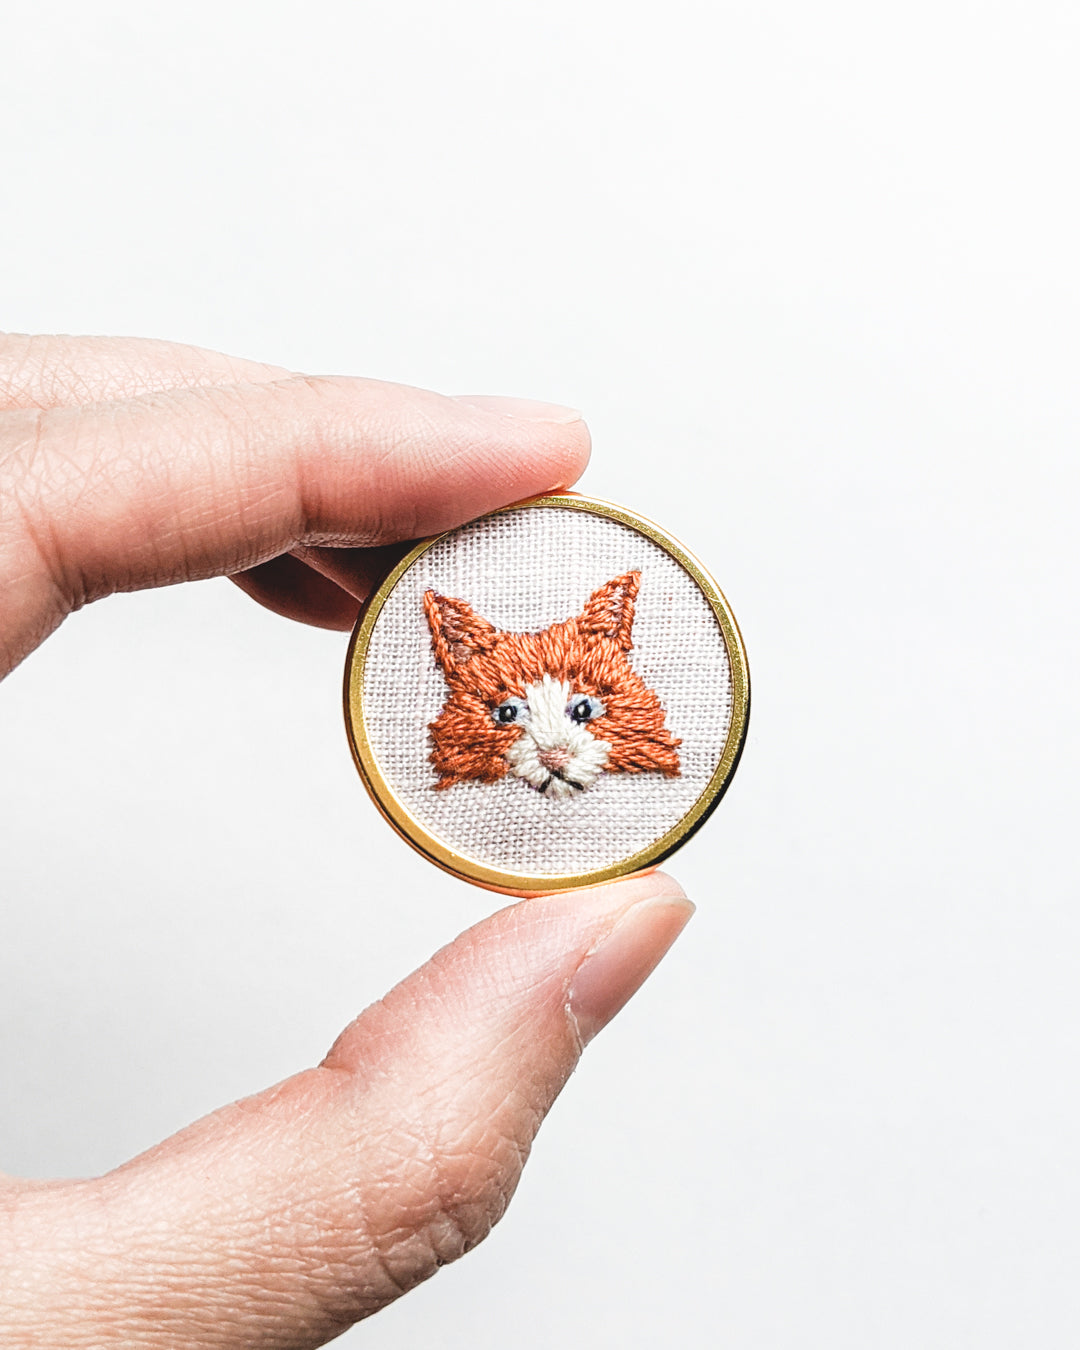 Embroidered Cat Pin - Orange Maine Coon